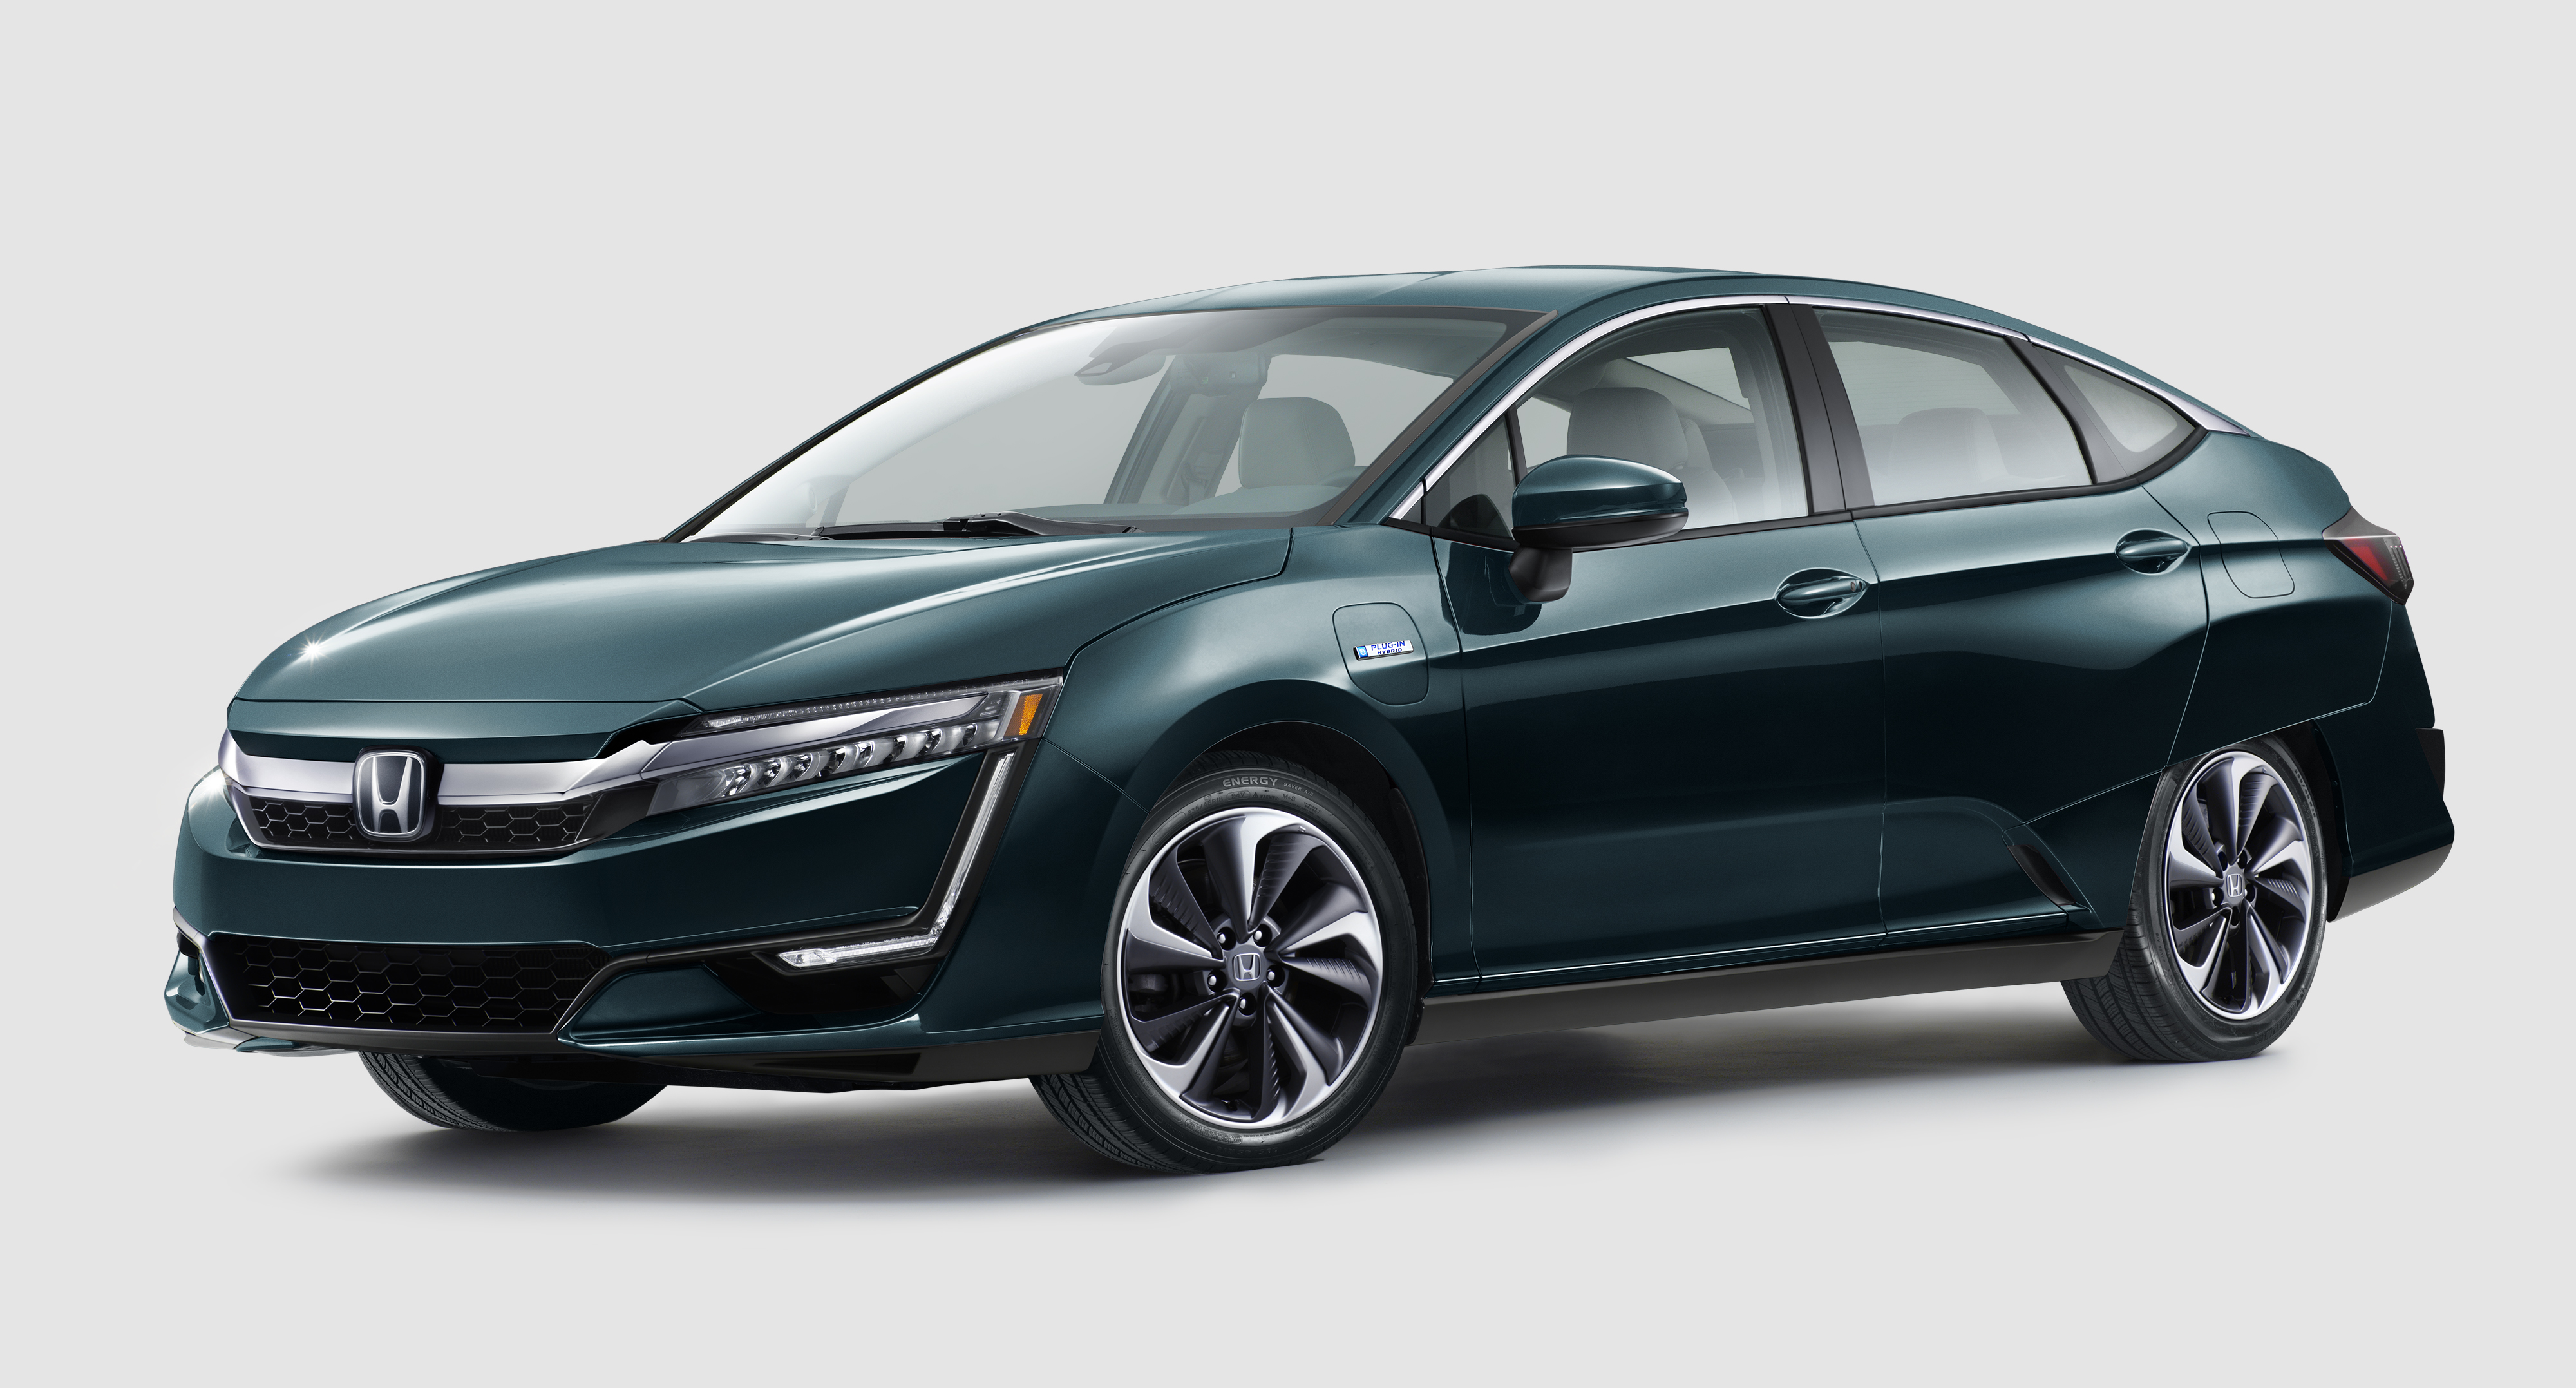 2018 Honda Clarity Phev Offers Best In Cl Electric Range For 33 400